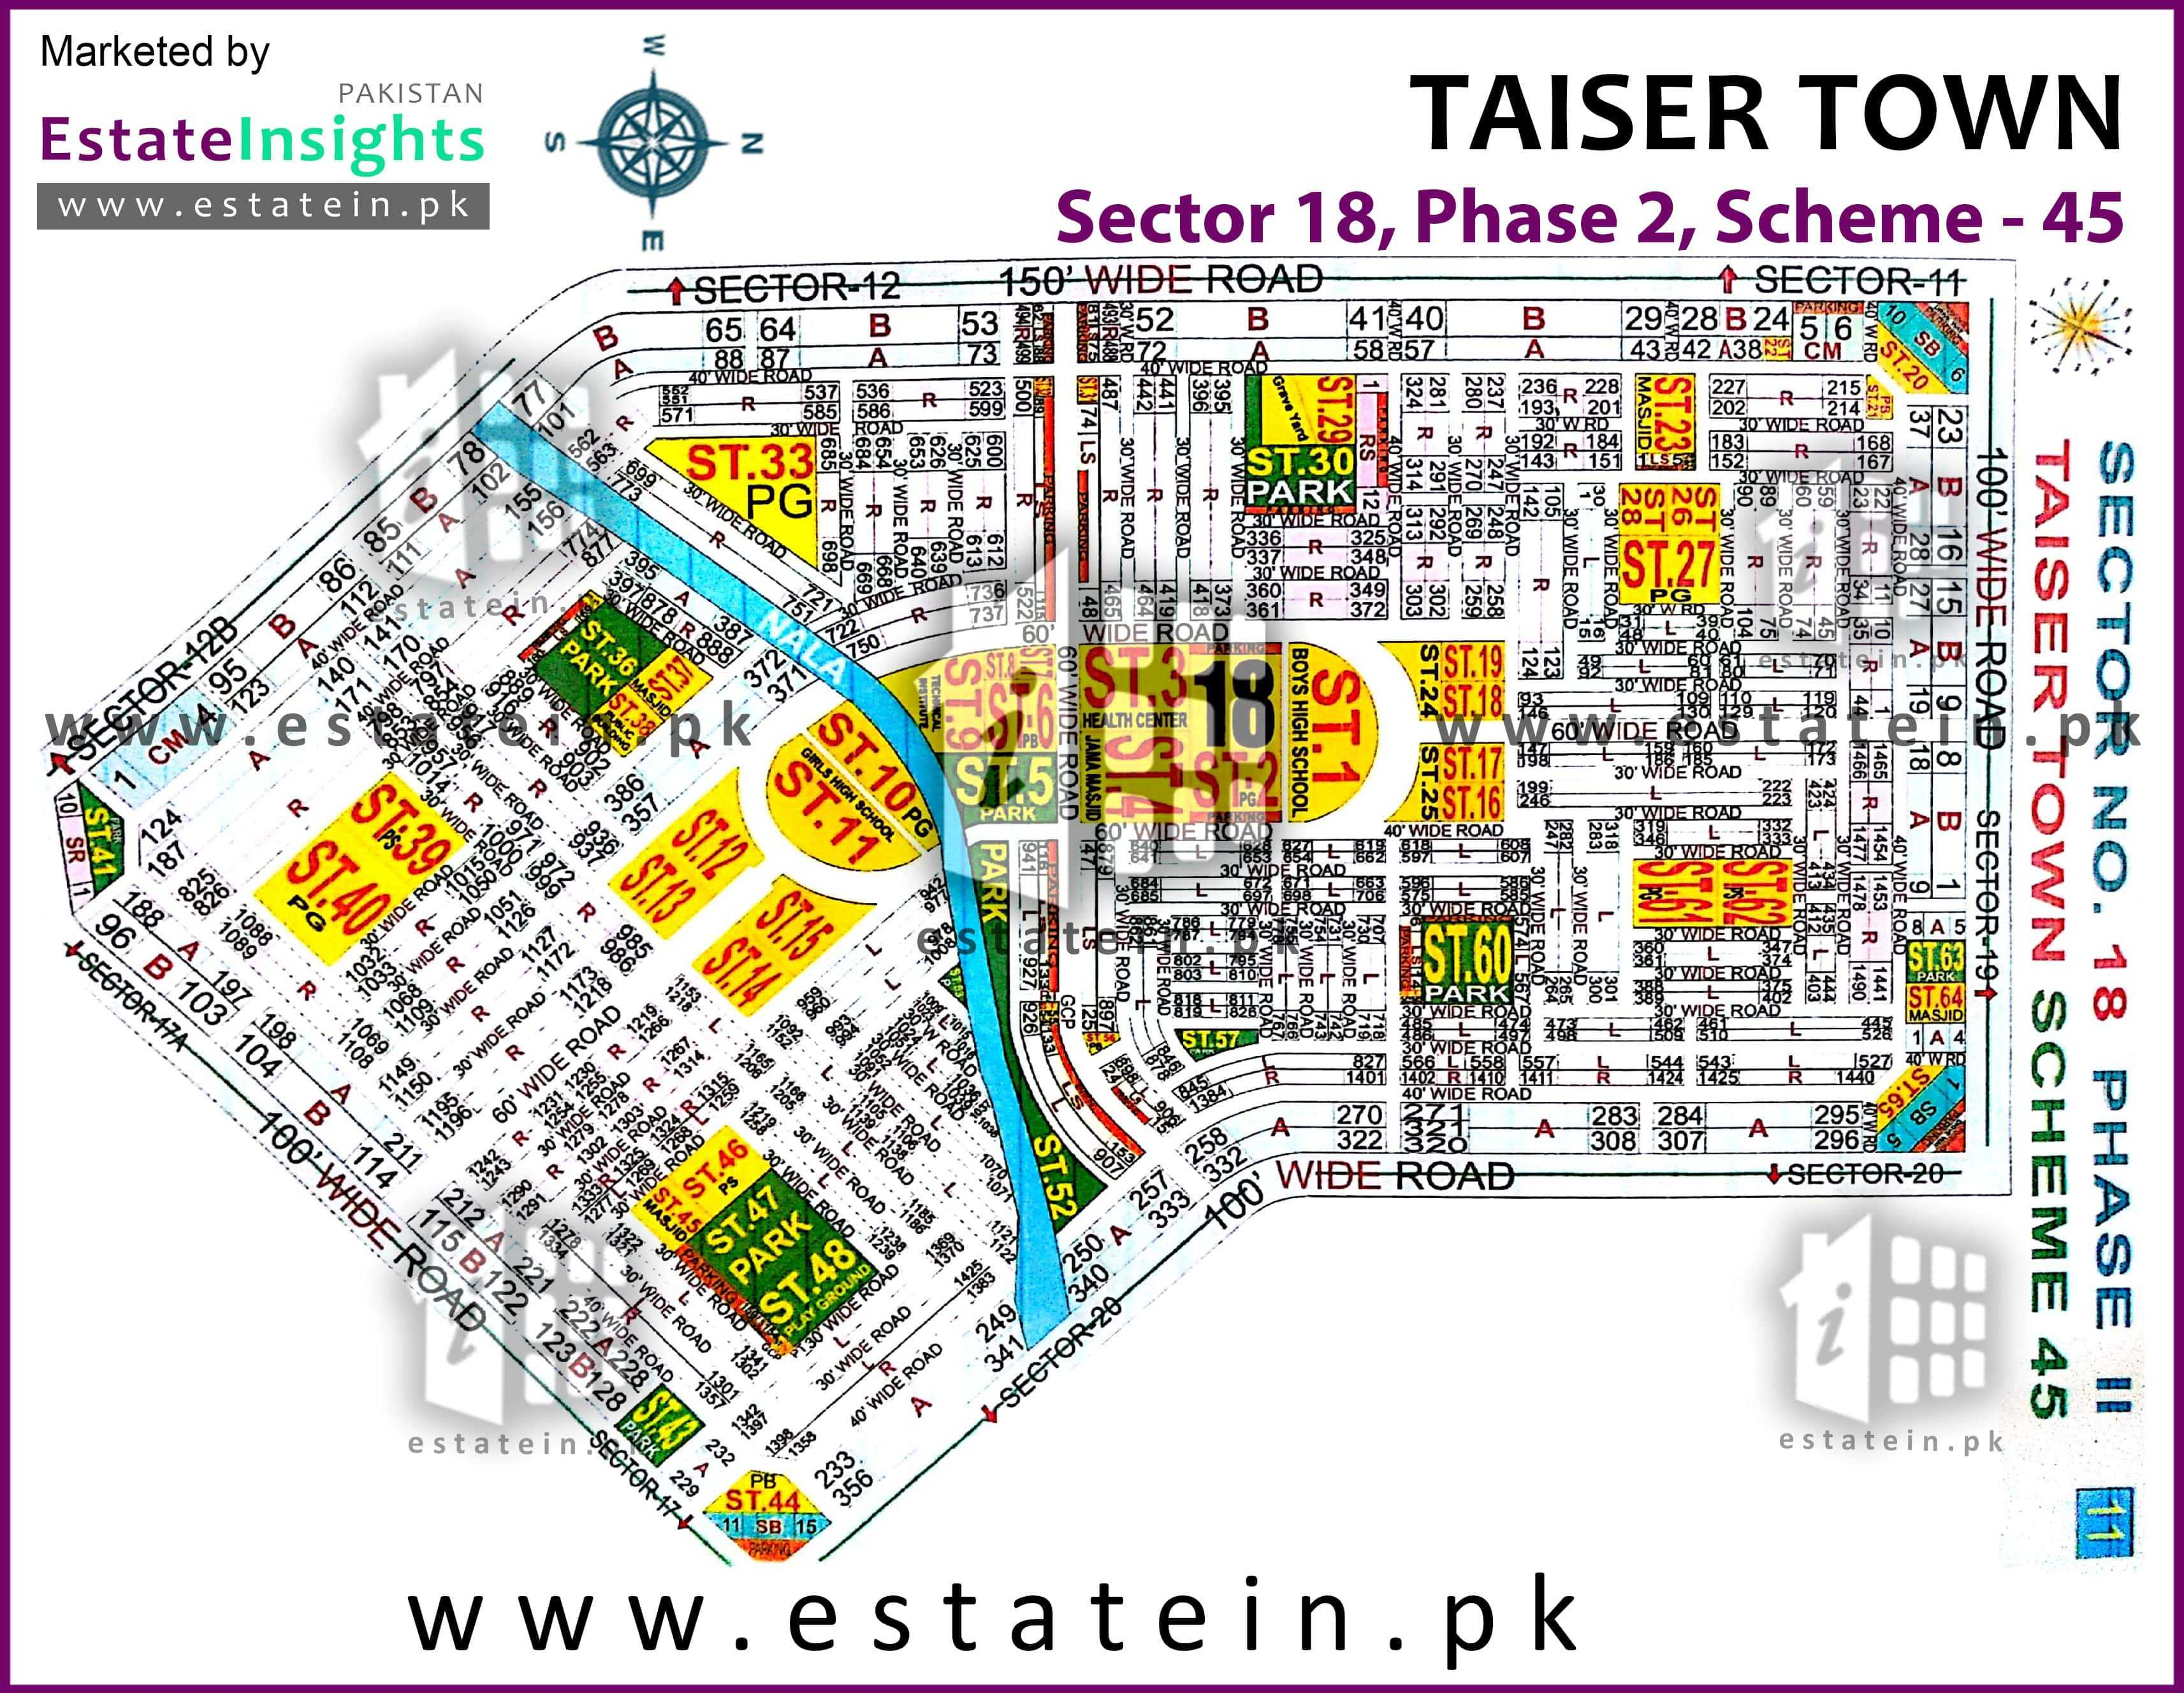 Site Plan of Sector 18 of Taiser Town Phase II